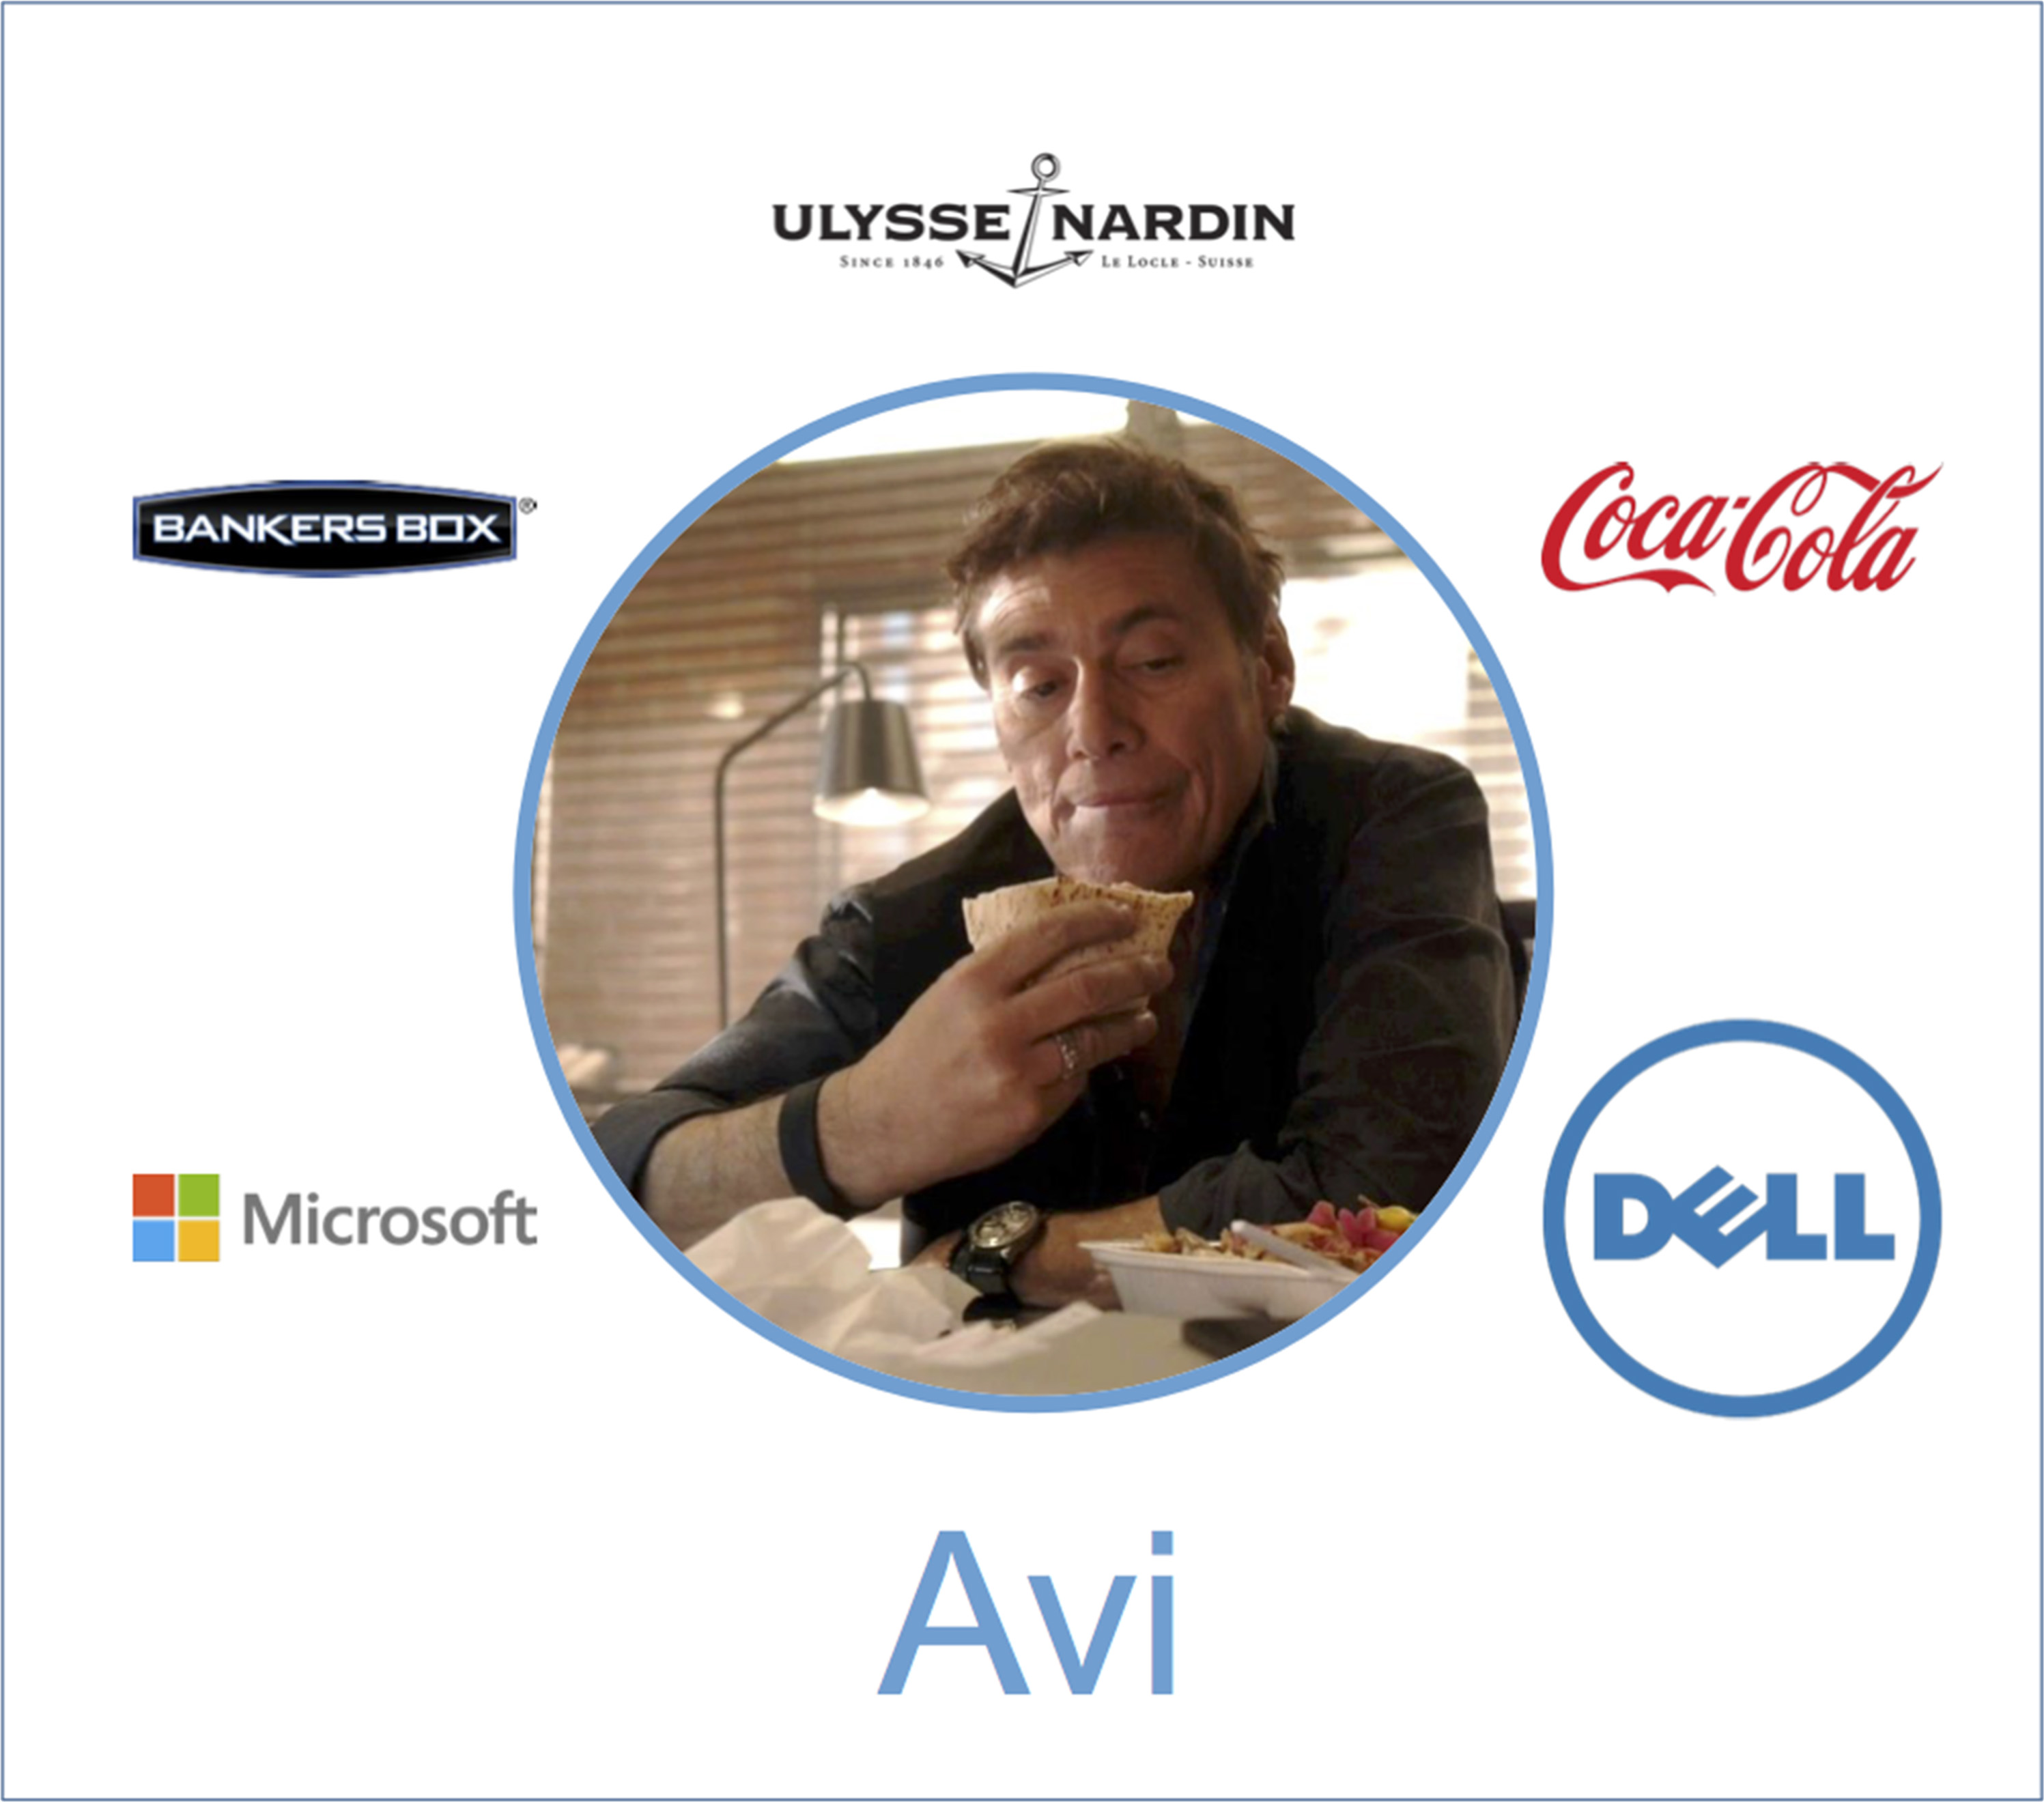 avi brands product placment ray donovan season 4 ulysse nardin coca-cola dell microsoft